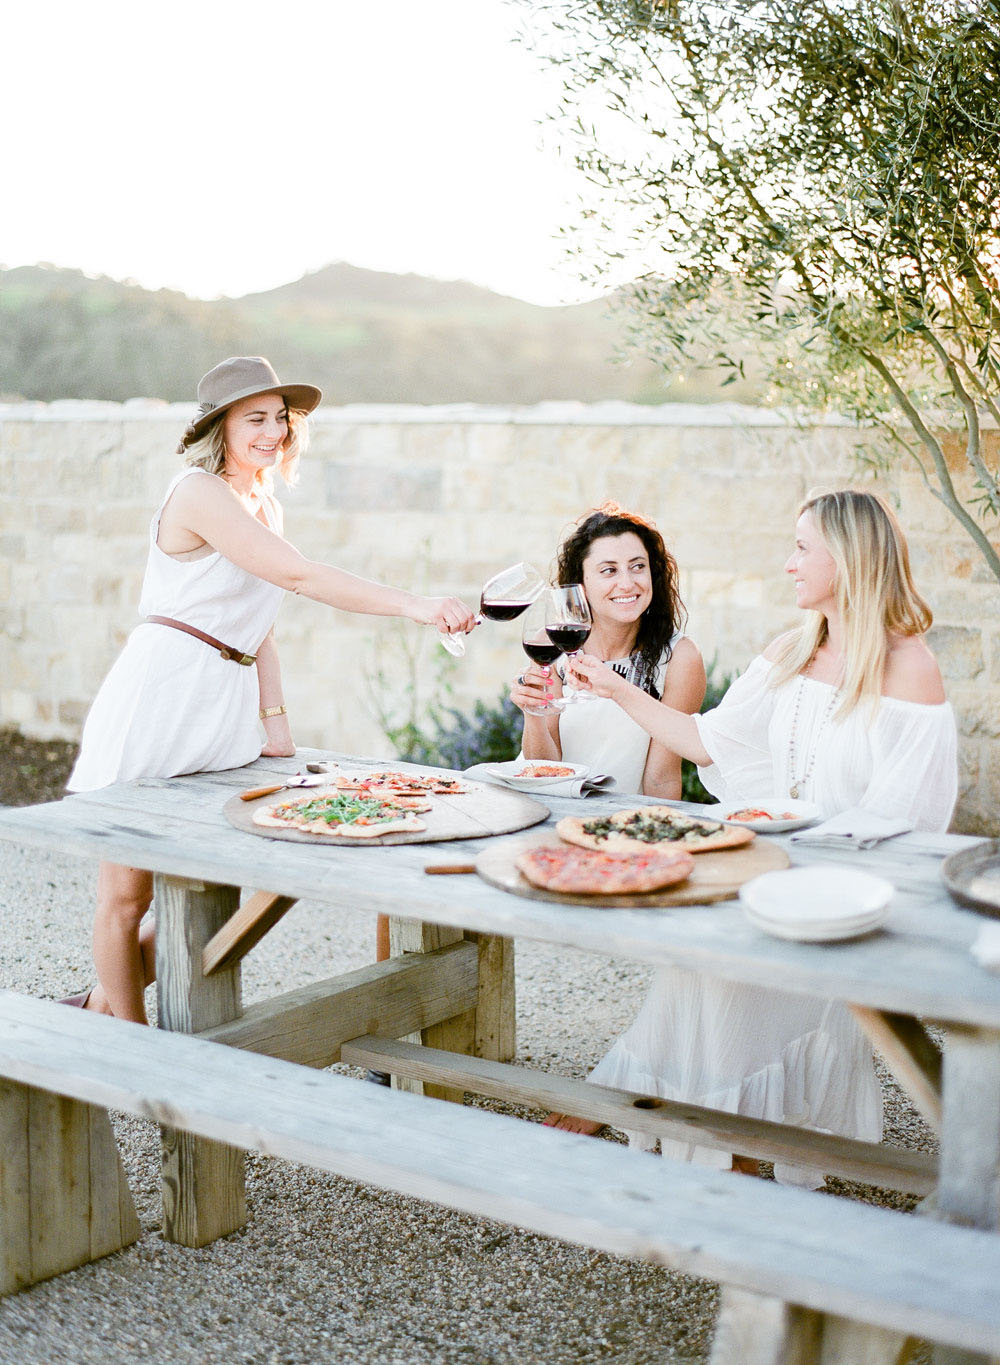 kellyoshiro.com | Photo: Jeanni Dunagan for Flutter Magazine | Chic Pizza Party Ideas | Prop stylist for food